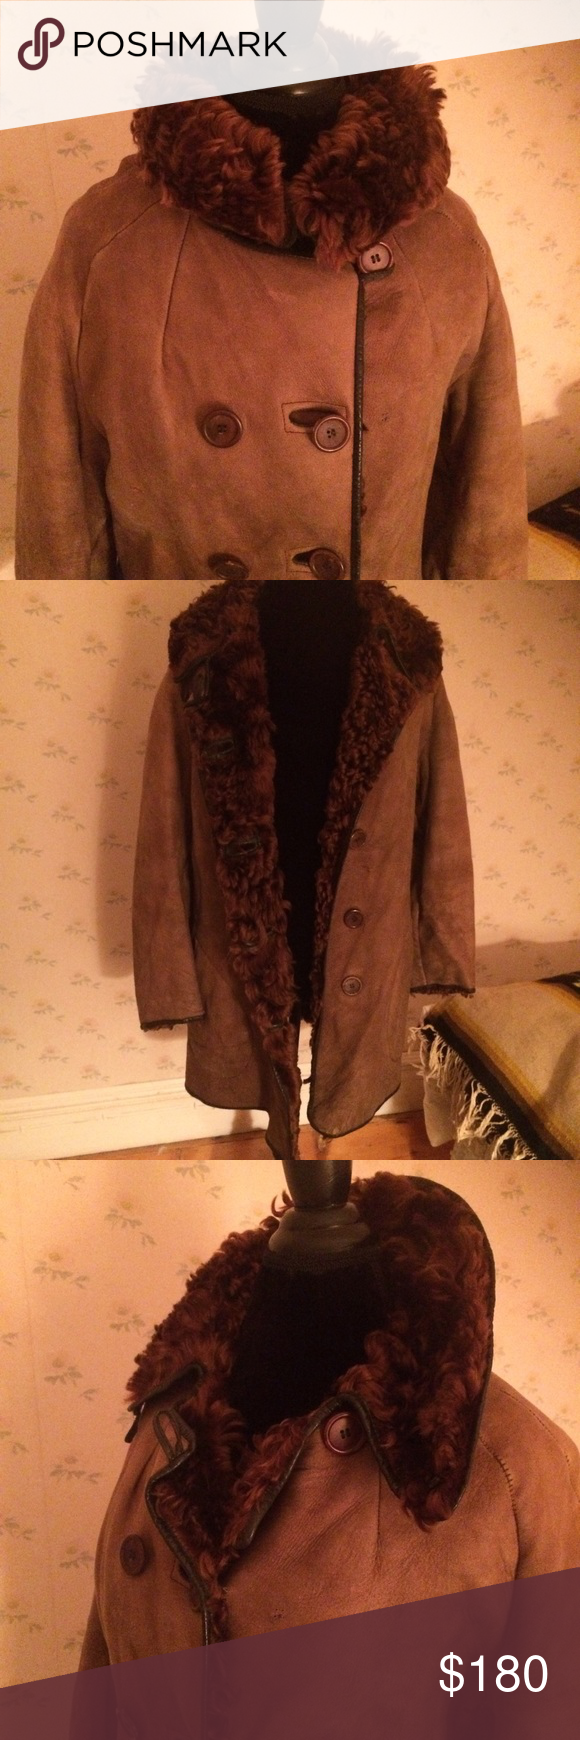 """Vintage Lamb Skin Sheep Skin Women's Coat Vintage Lamb Skin Sheep Skin Women's Coat, curly hair inside. Super warm, 100 % fur. Double breasted. Super stylish. Has vintage wear, small 1/4"""" mended tear on back shoulder seam, no stains. Smoke and pet free home. Jackets & Coats"""